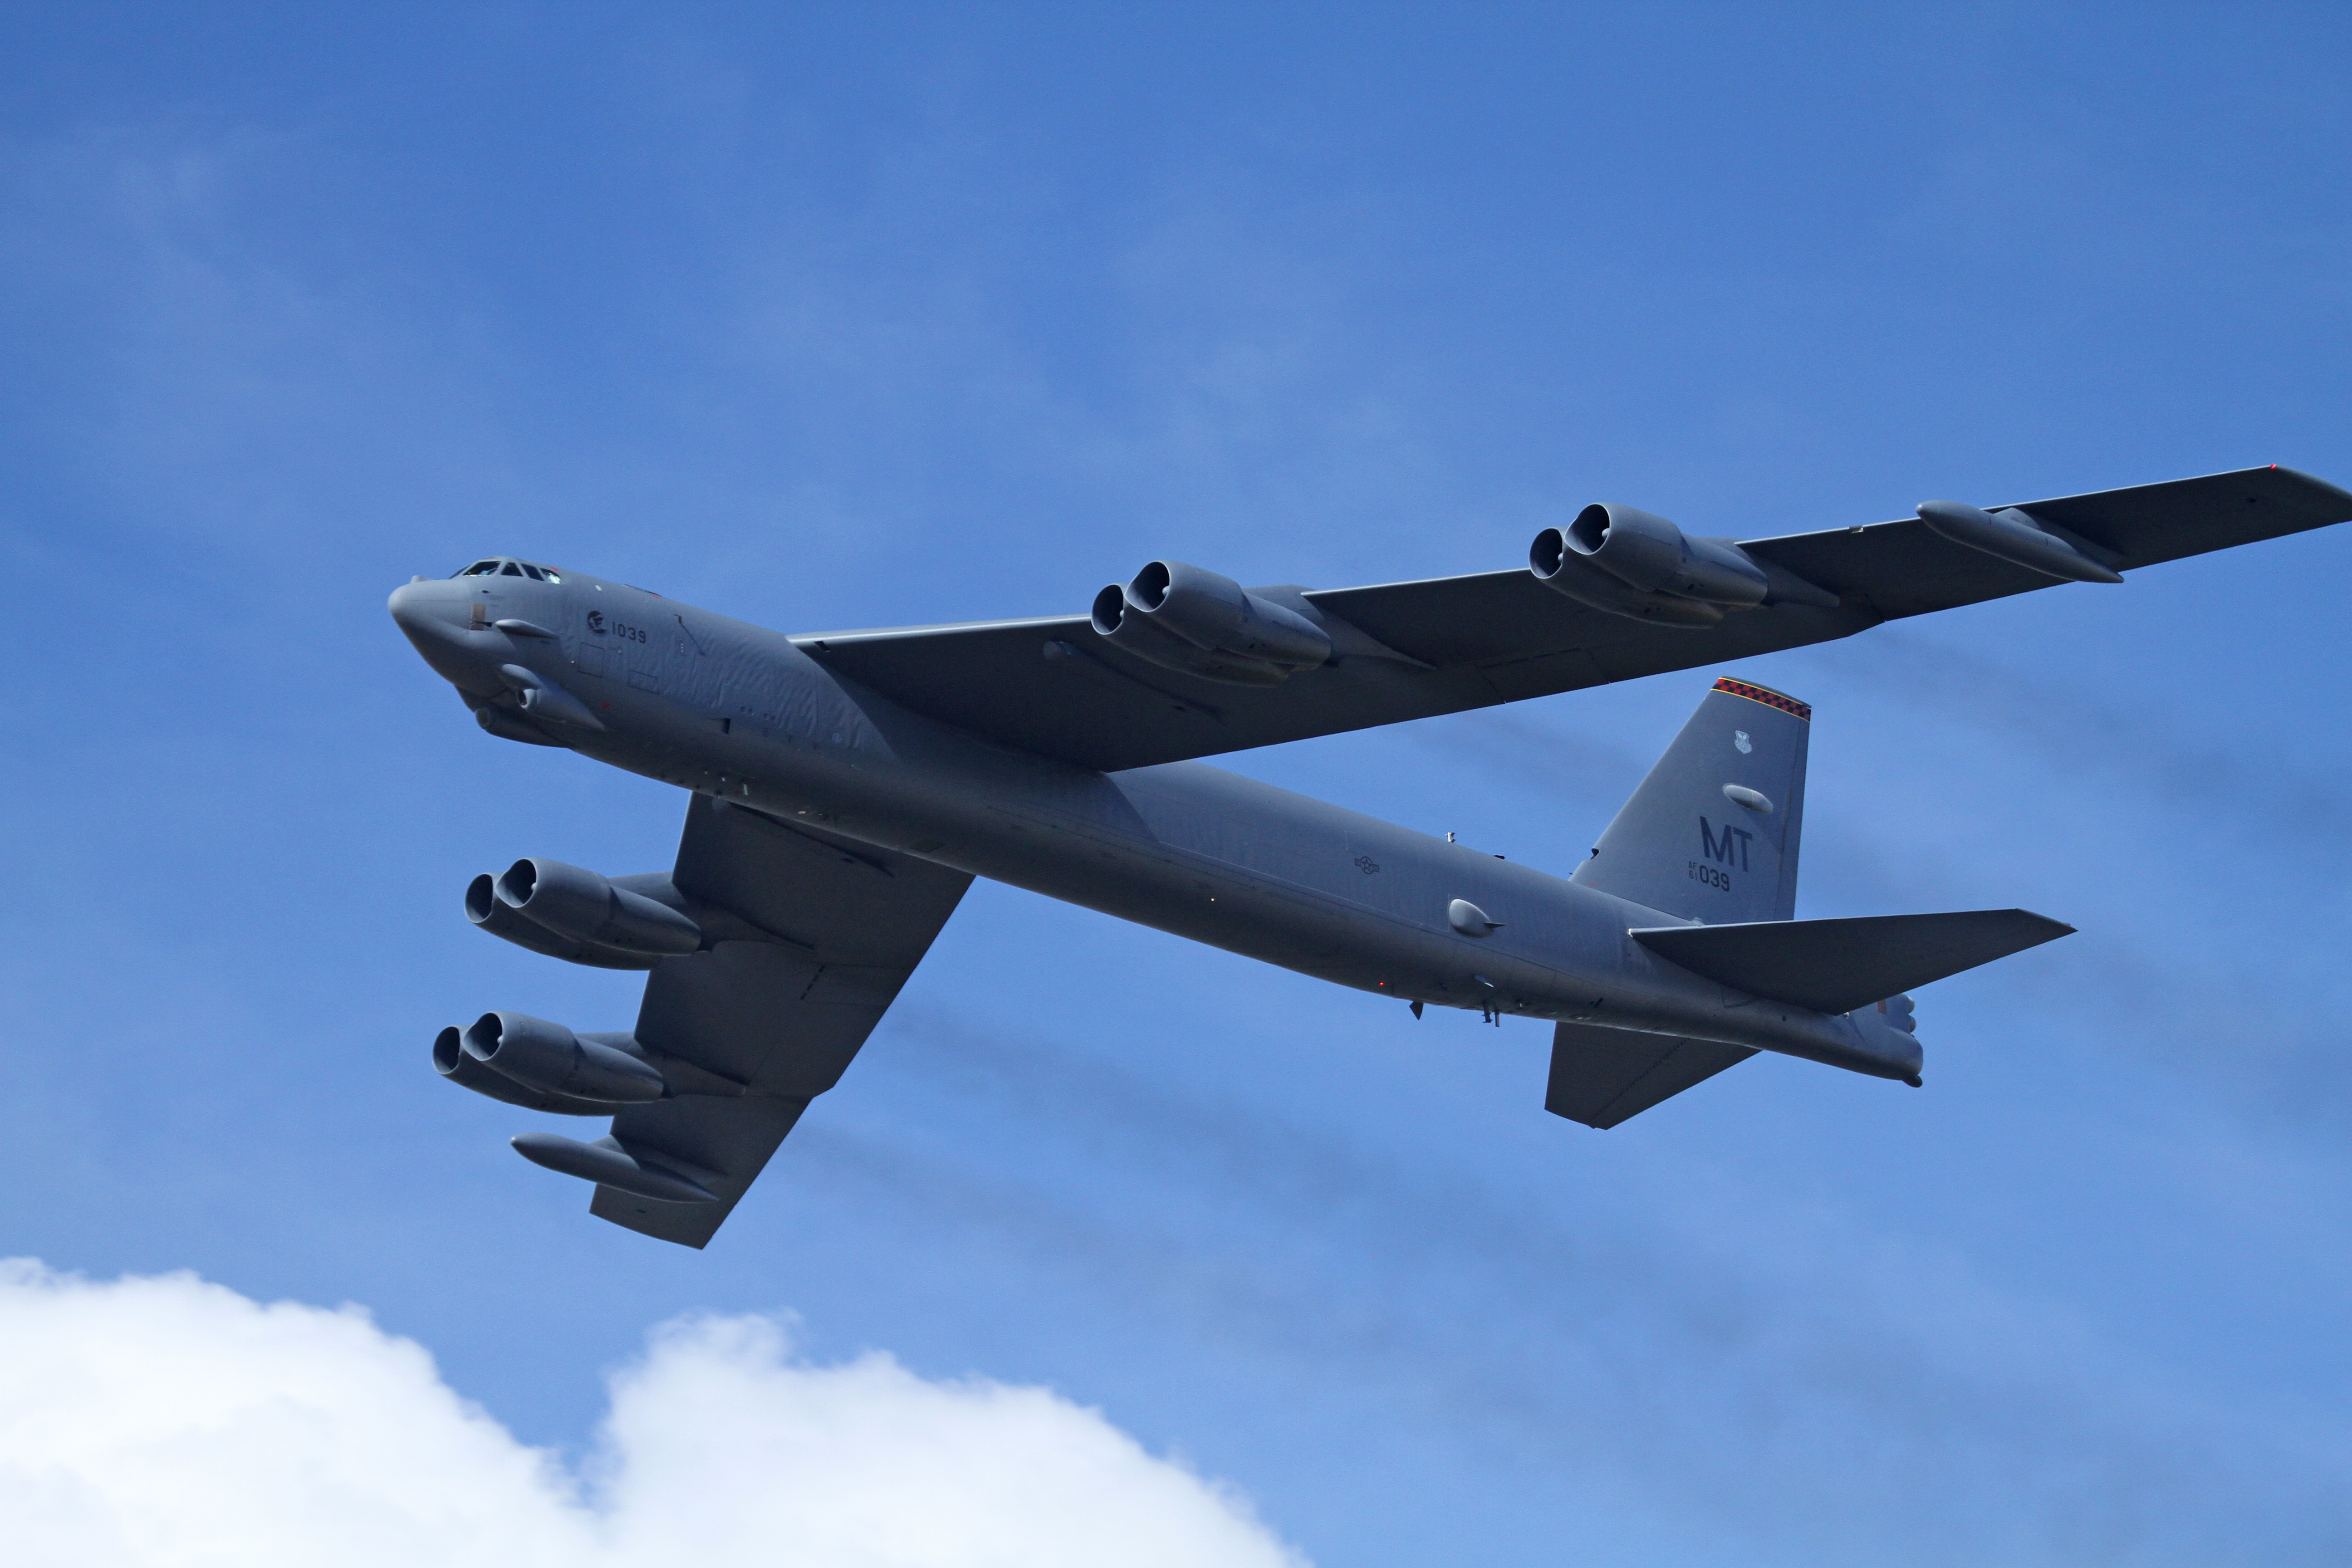 Boeing B-52H Stratofortress Picture - Fighter Jet Picture